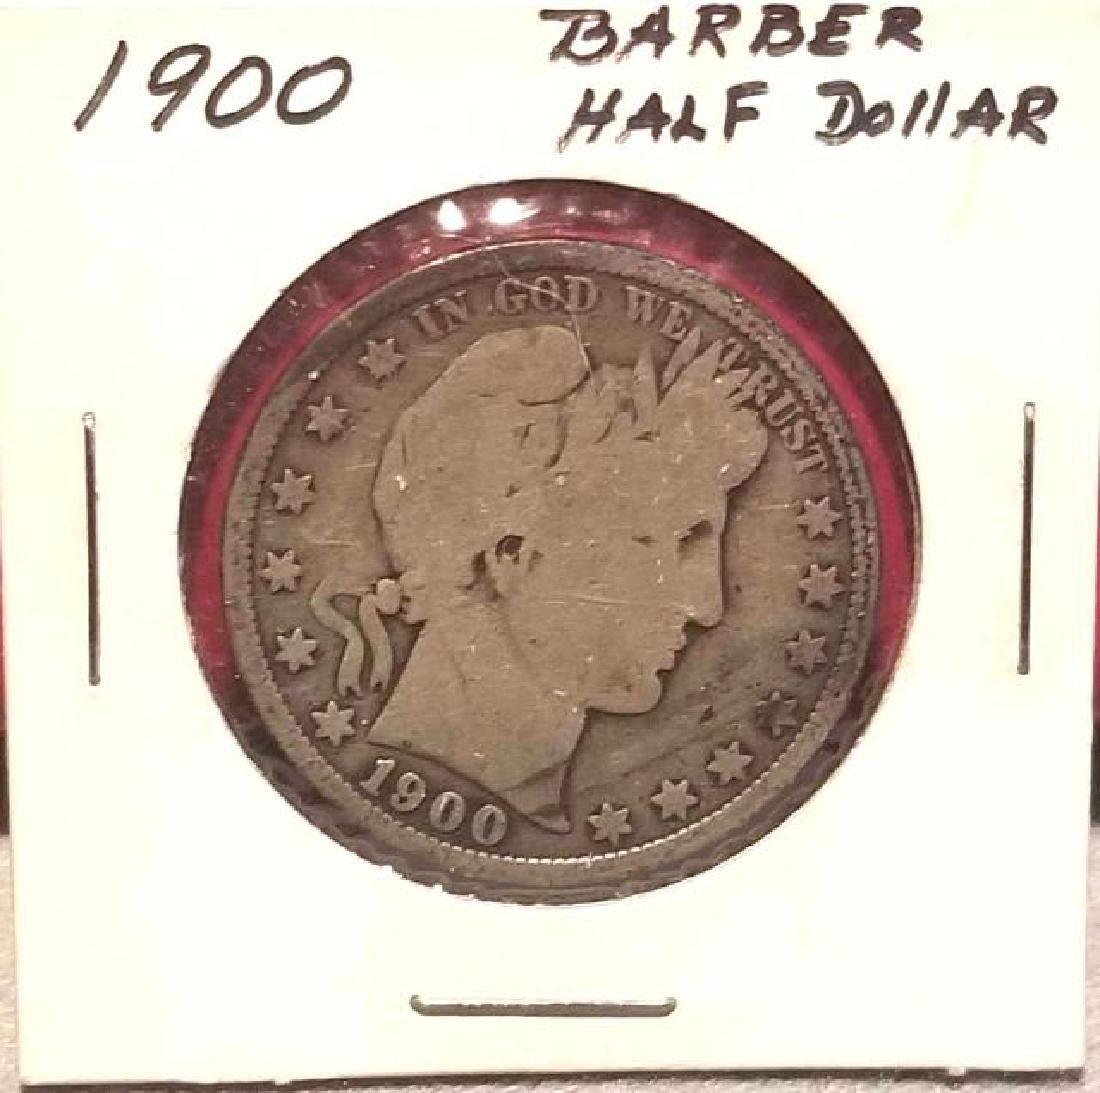 1900 Barber half dollar   In circulated condition